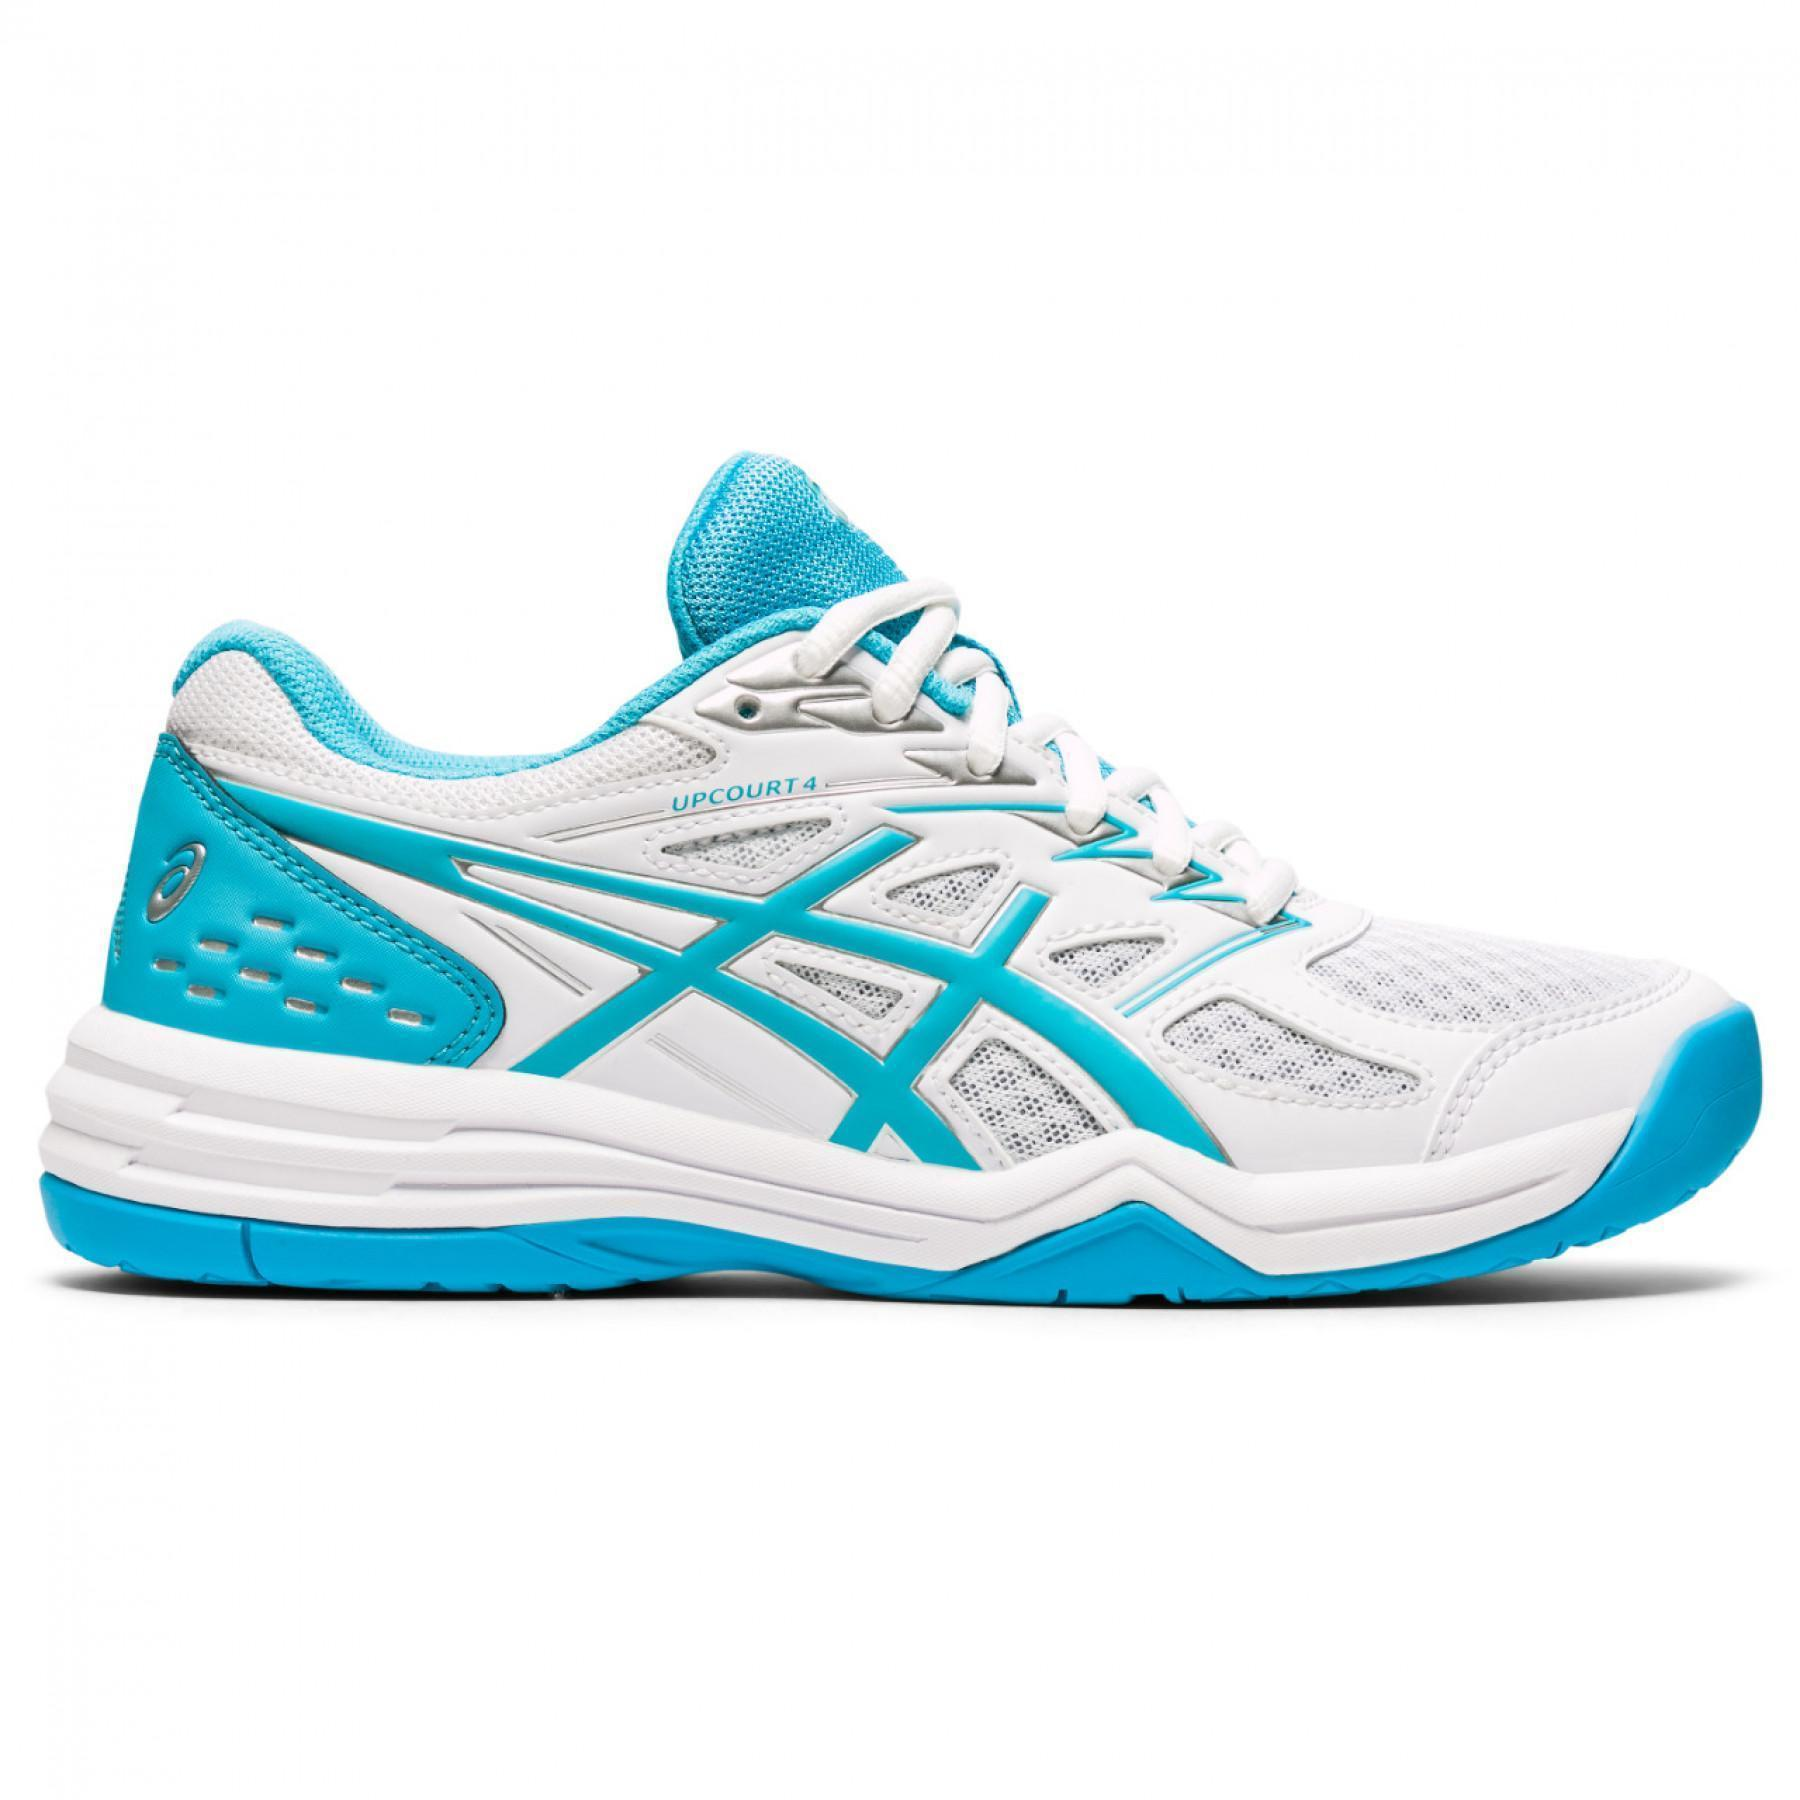 Shoes woman Asics Upcourt 4